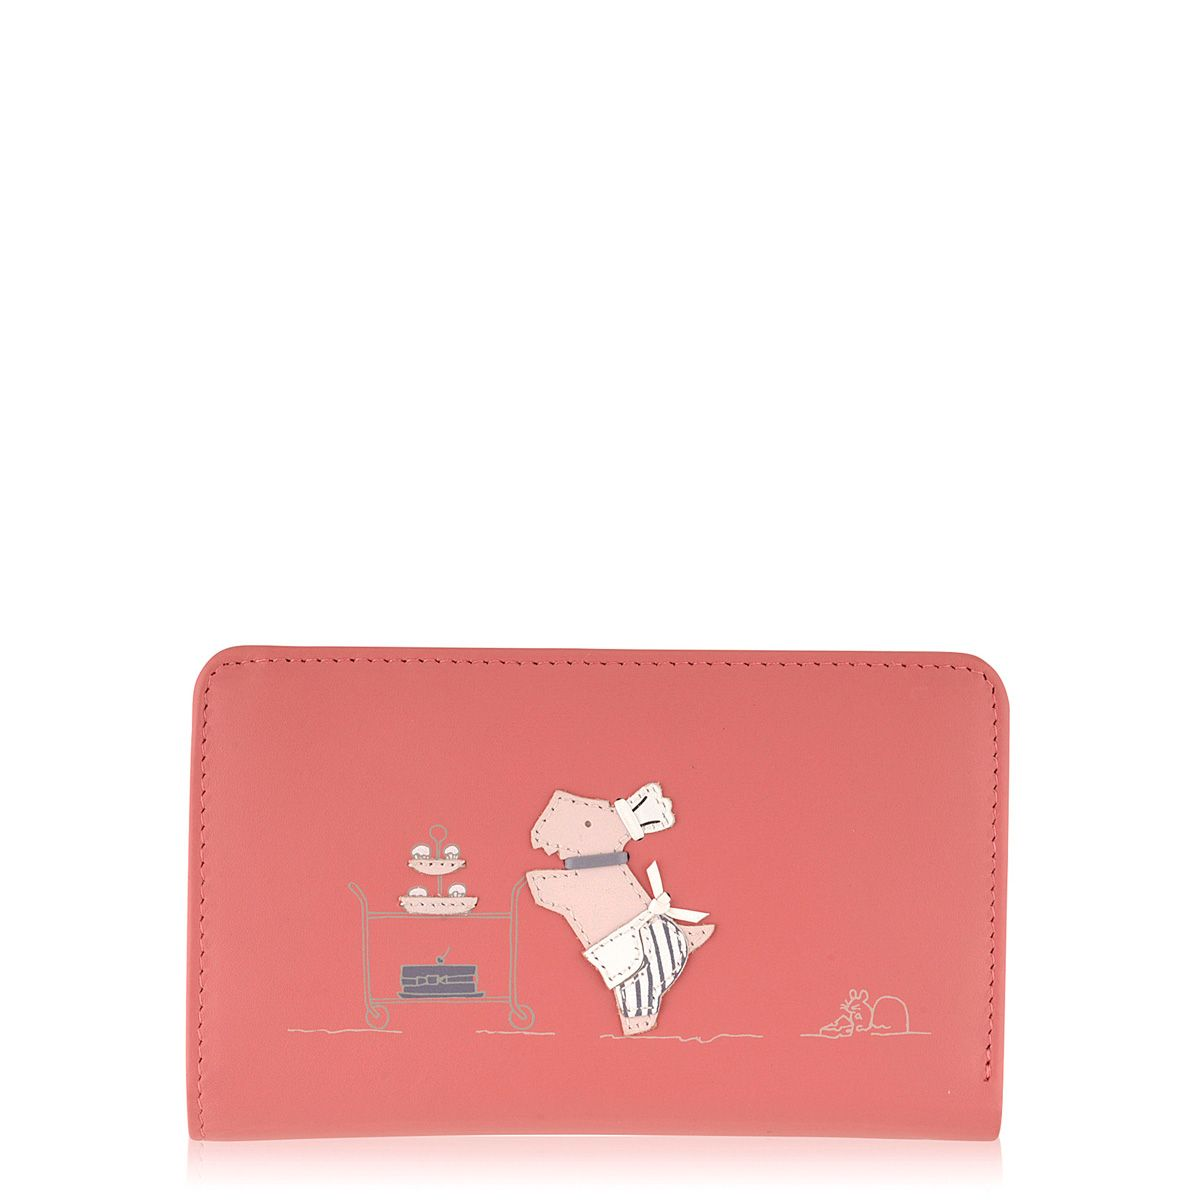 Patisserie Raderlie medium pink zip around purse